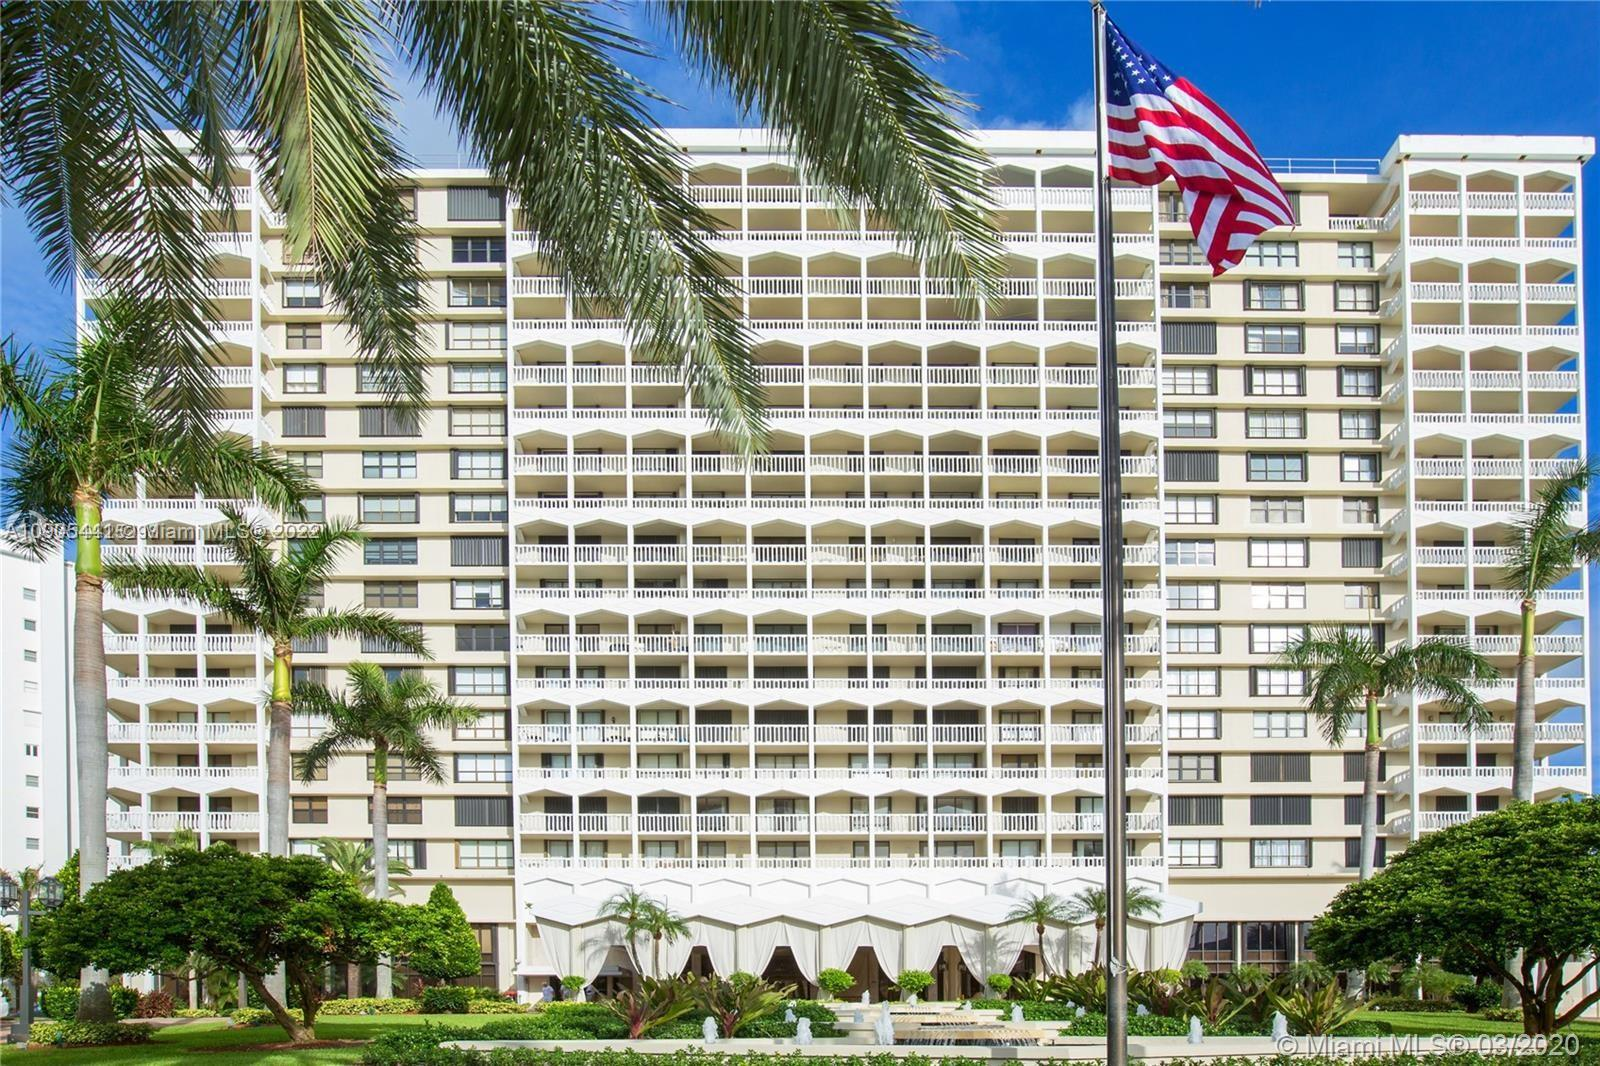 Prestigious condo Balmoral in exclusive Bal Harbour across world renowned Bal Harbour Shops and Harding Ave.  Needs TLC  Owner motivated, beach service, 3 tennis courts, gym,restaurant, hair salon,24 hours concierge, security, valet parking and more.  Maint. Includes basic cable and internet.